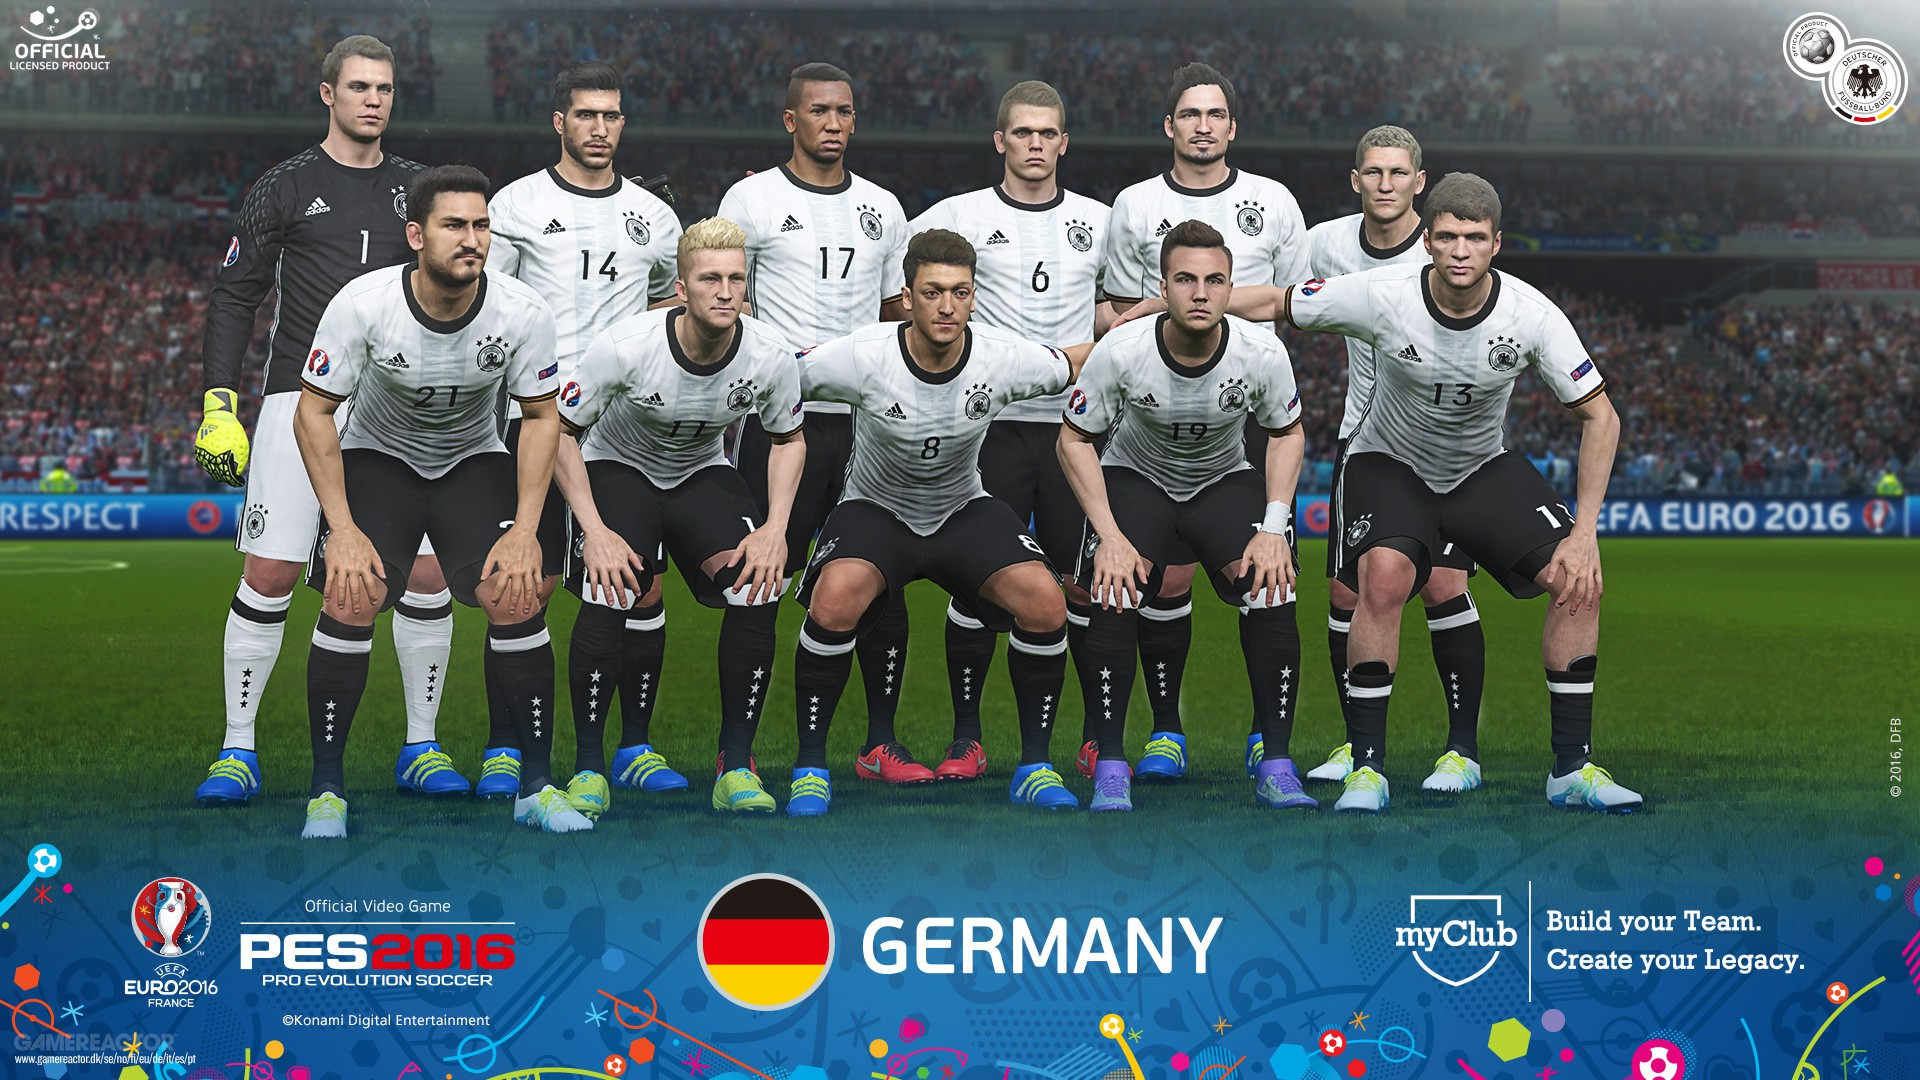 pictures of the uefa euro 2016 version of pes 2016 is out now 4 20. Black Bedroom Furniture Sets. Home Design Ideas